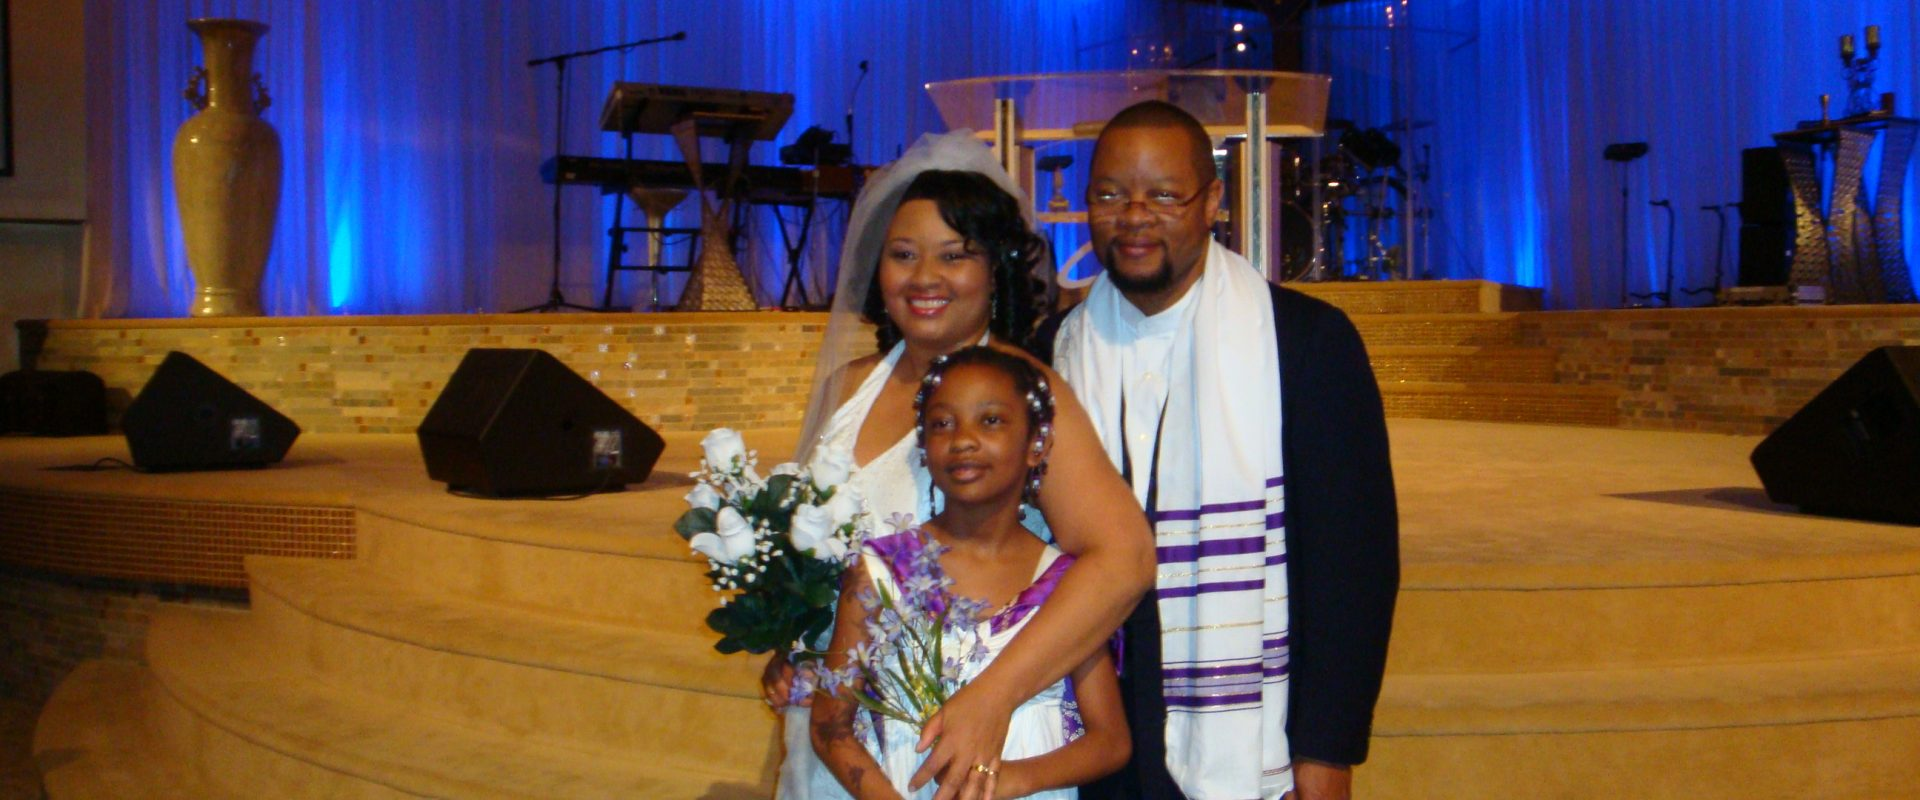 Permalink to: Mayfield Marriage Covenant